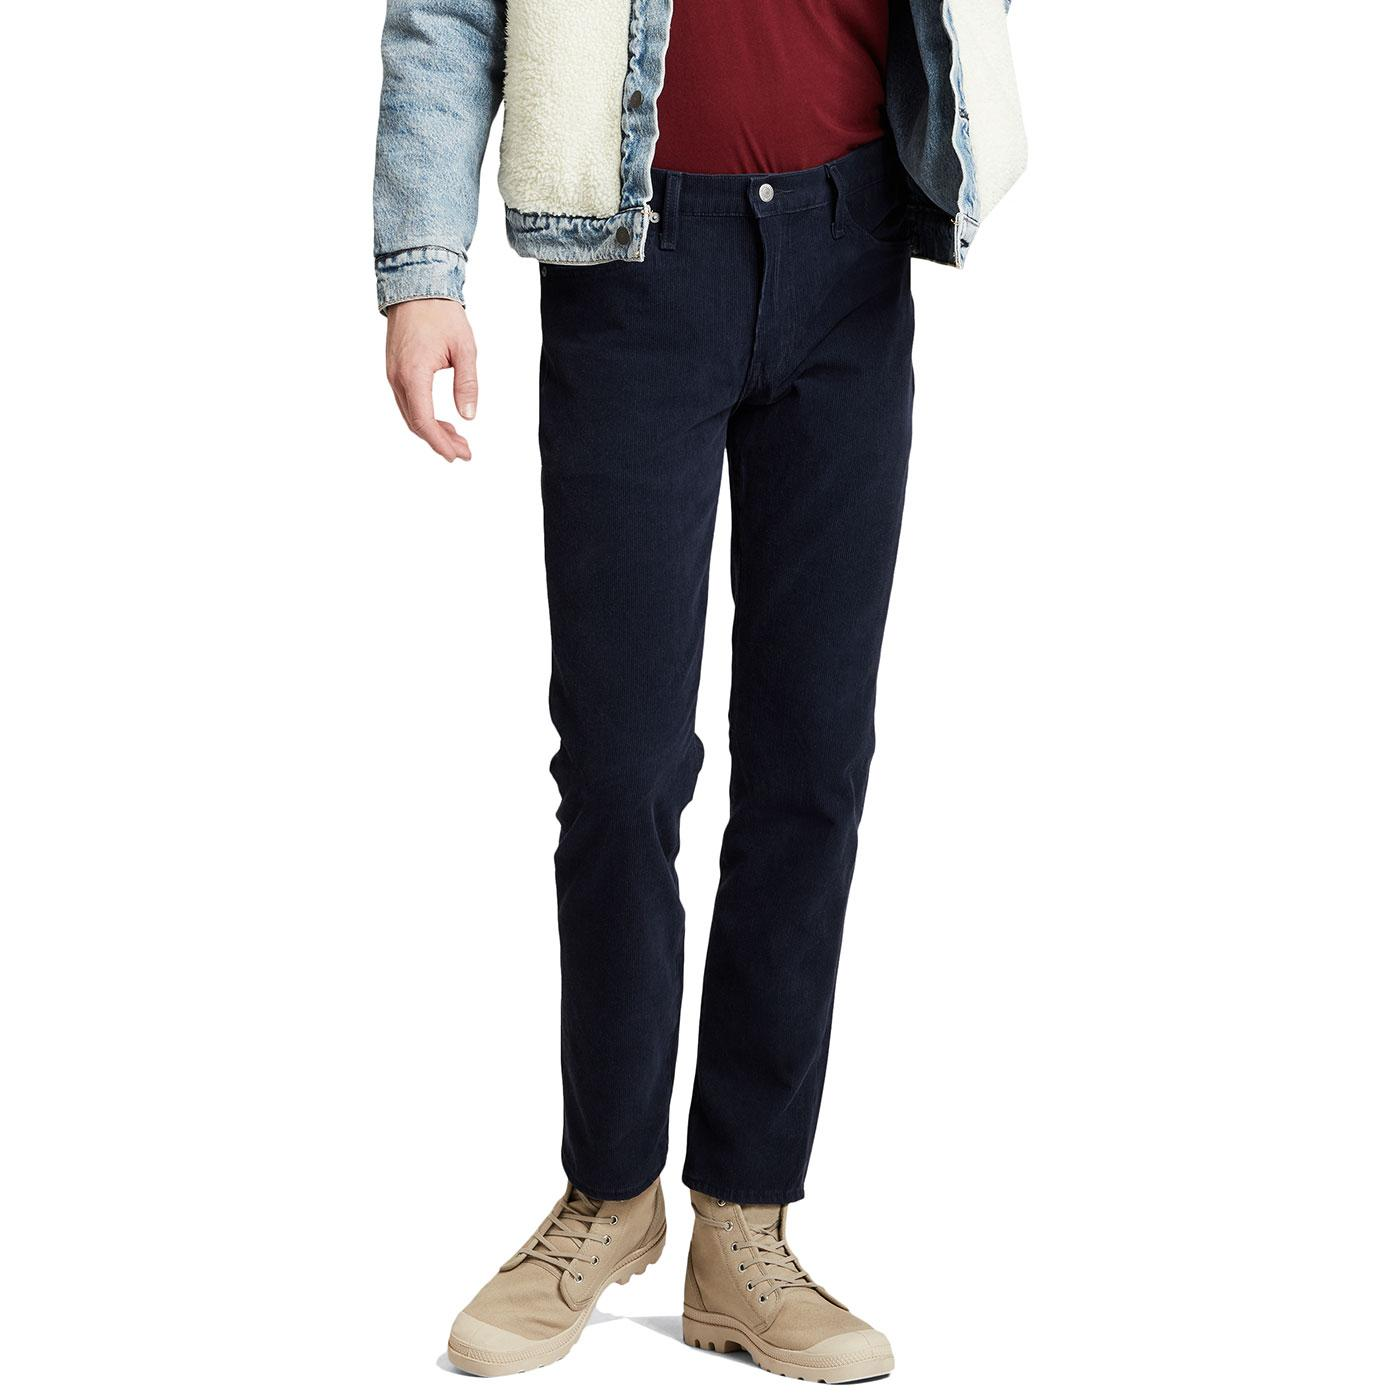 LEVI'S 511 Mod Slim Cord Jeans (Nightwatch Blue)